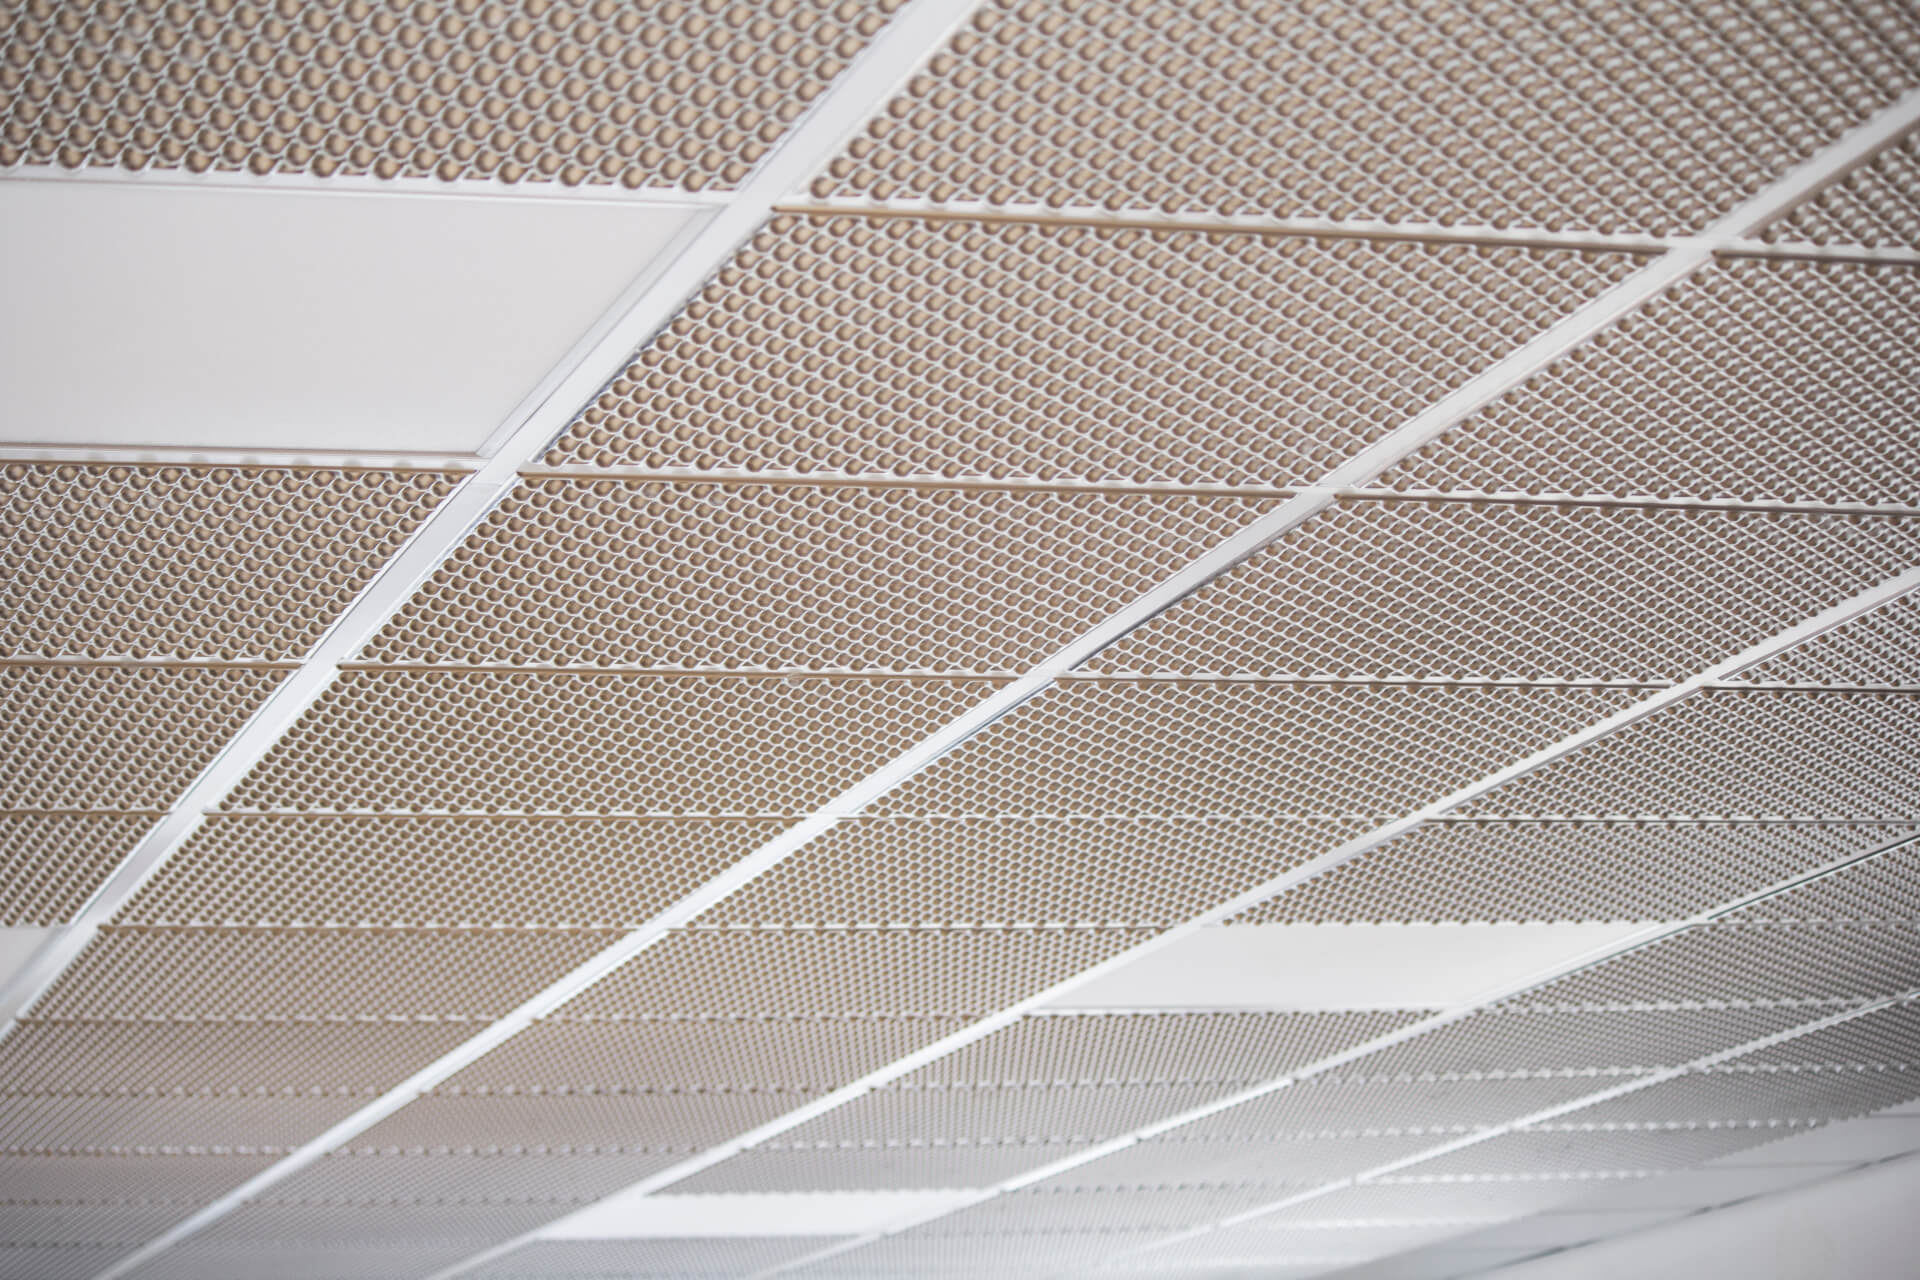 Ceiling panels by Mykon suitable for a range of home and office applications